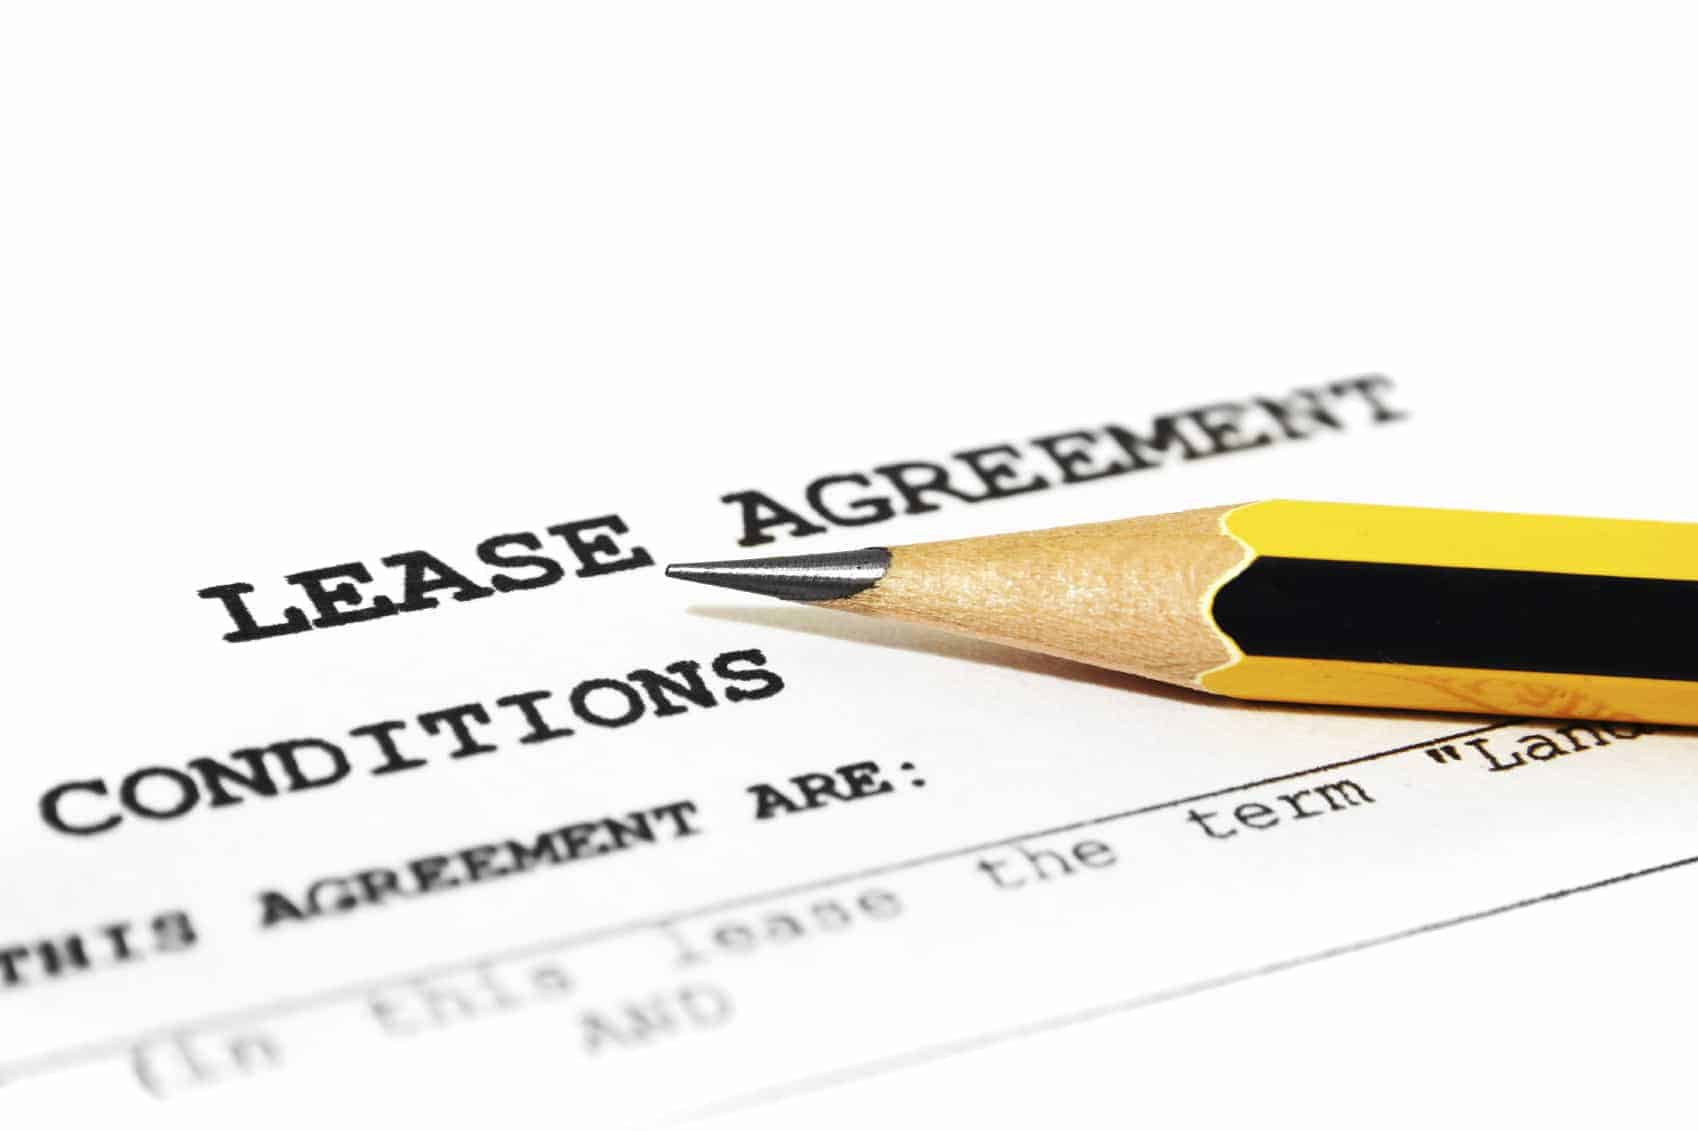 10 Questions to Ask When Apartment Hunting - What are the lease terms?